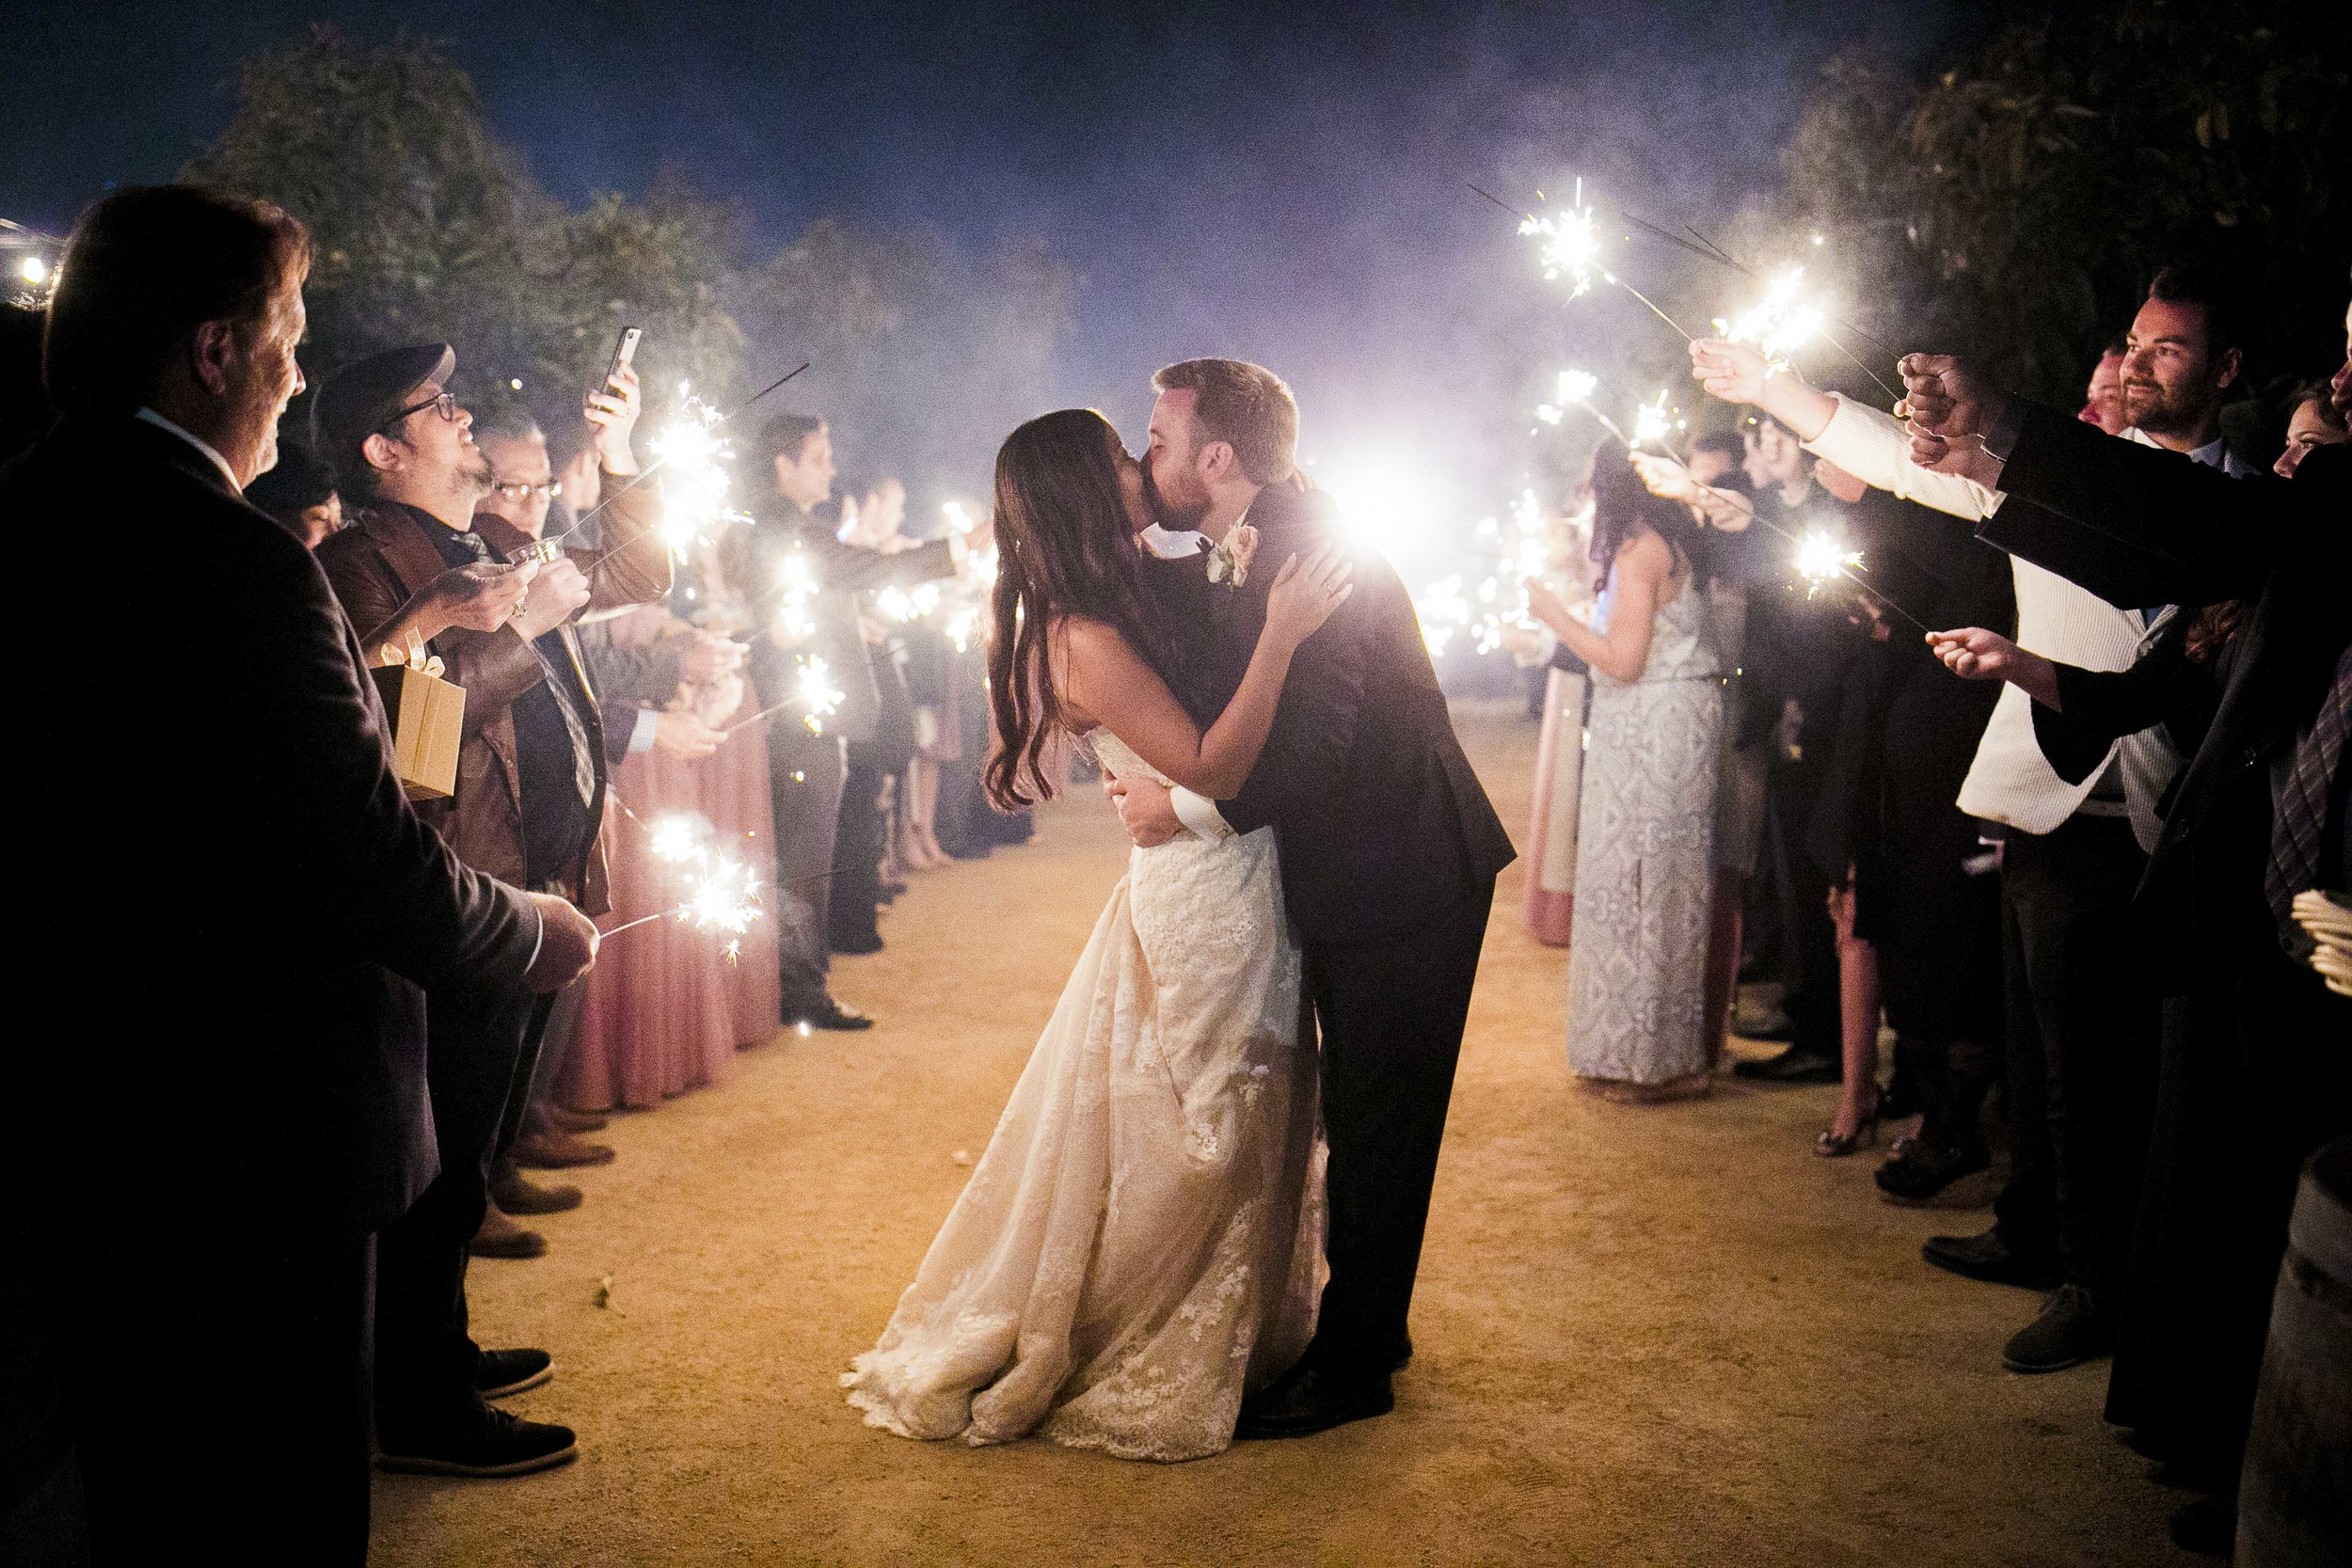 0765-KS-Gerry-Ranch-Ventura-County-Wedding-Photography-EDIT.jpg